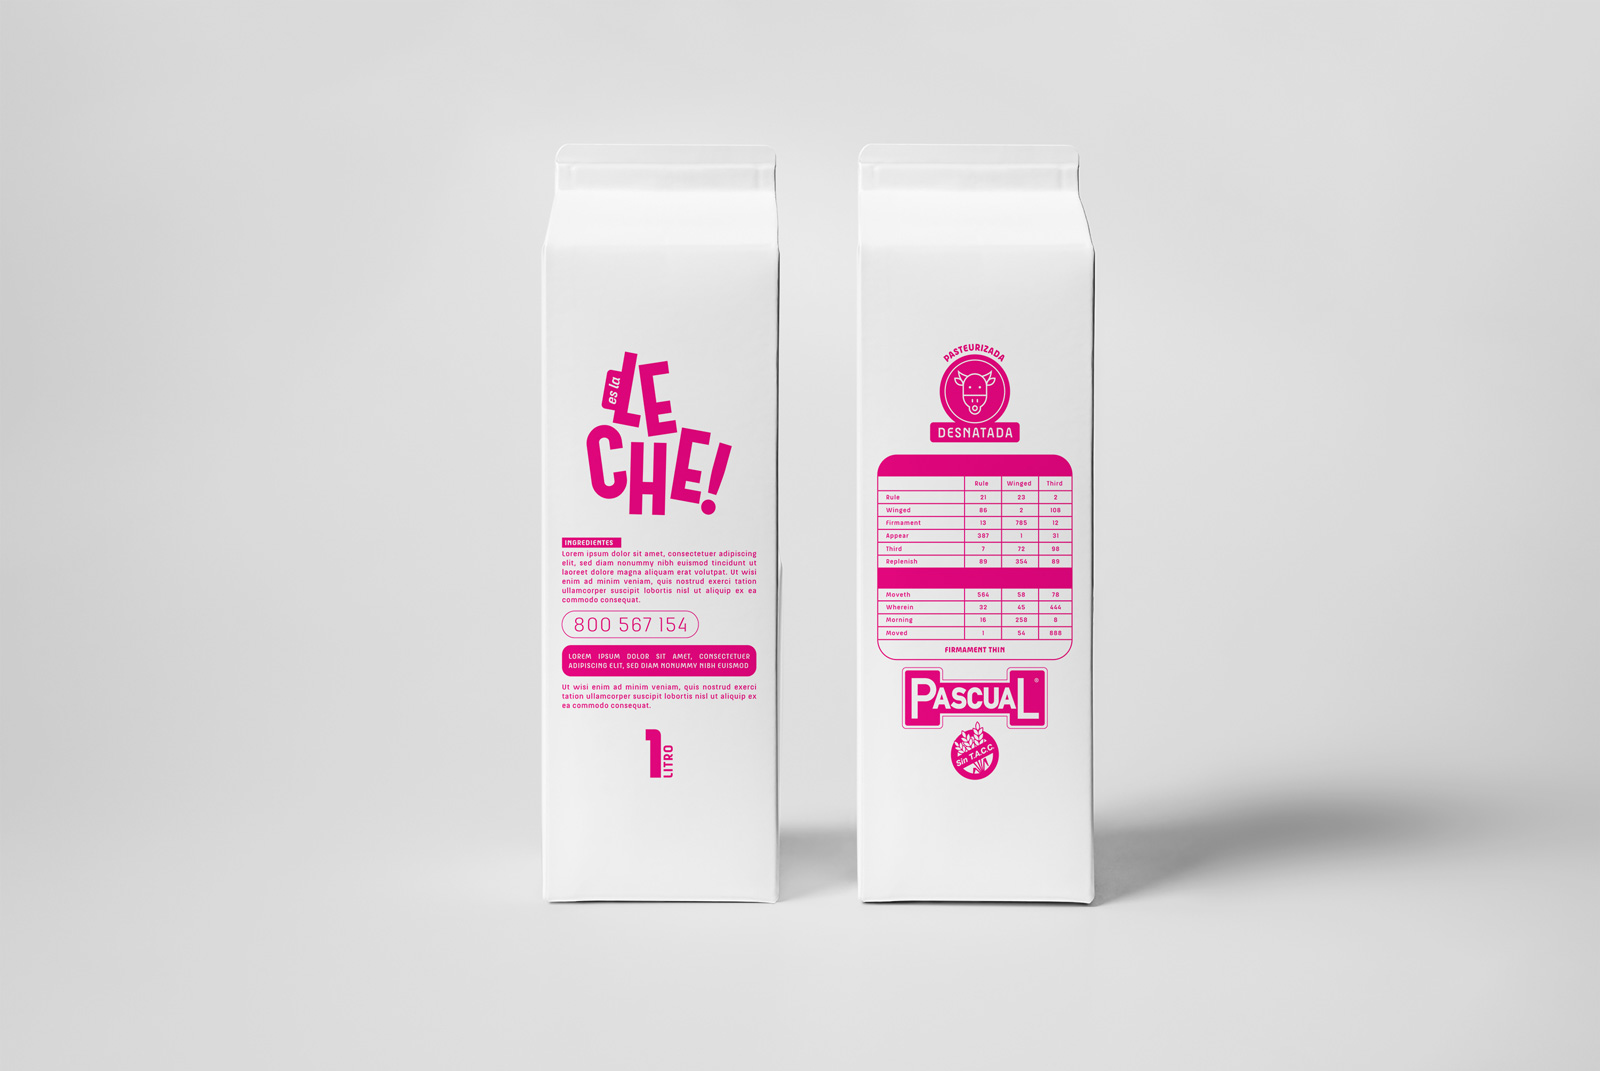 Leche-Pascual-Packaging-06